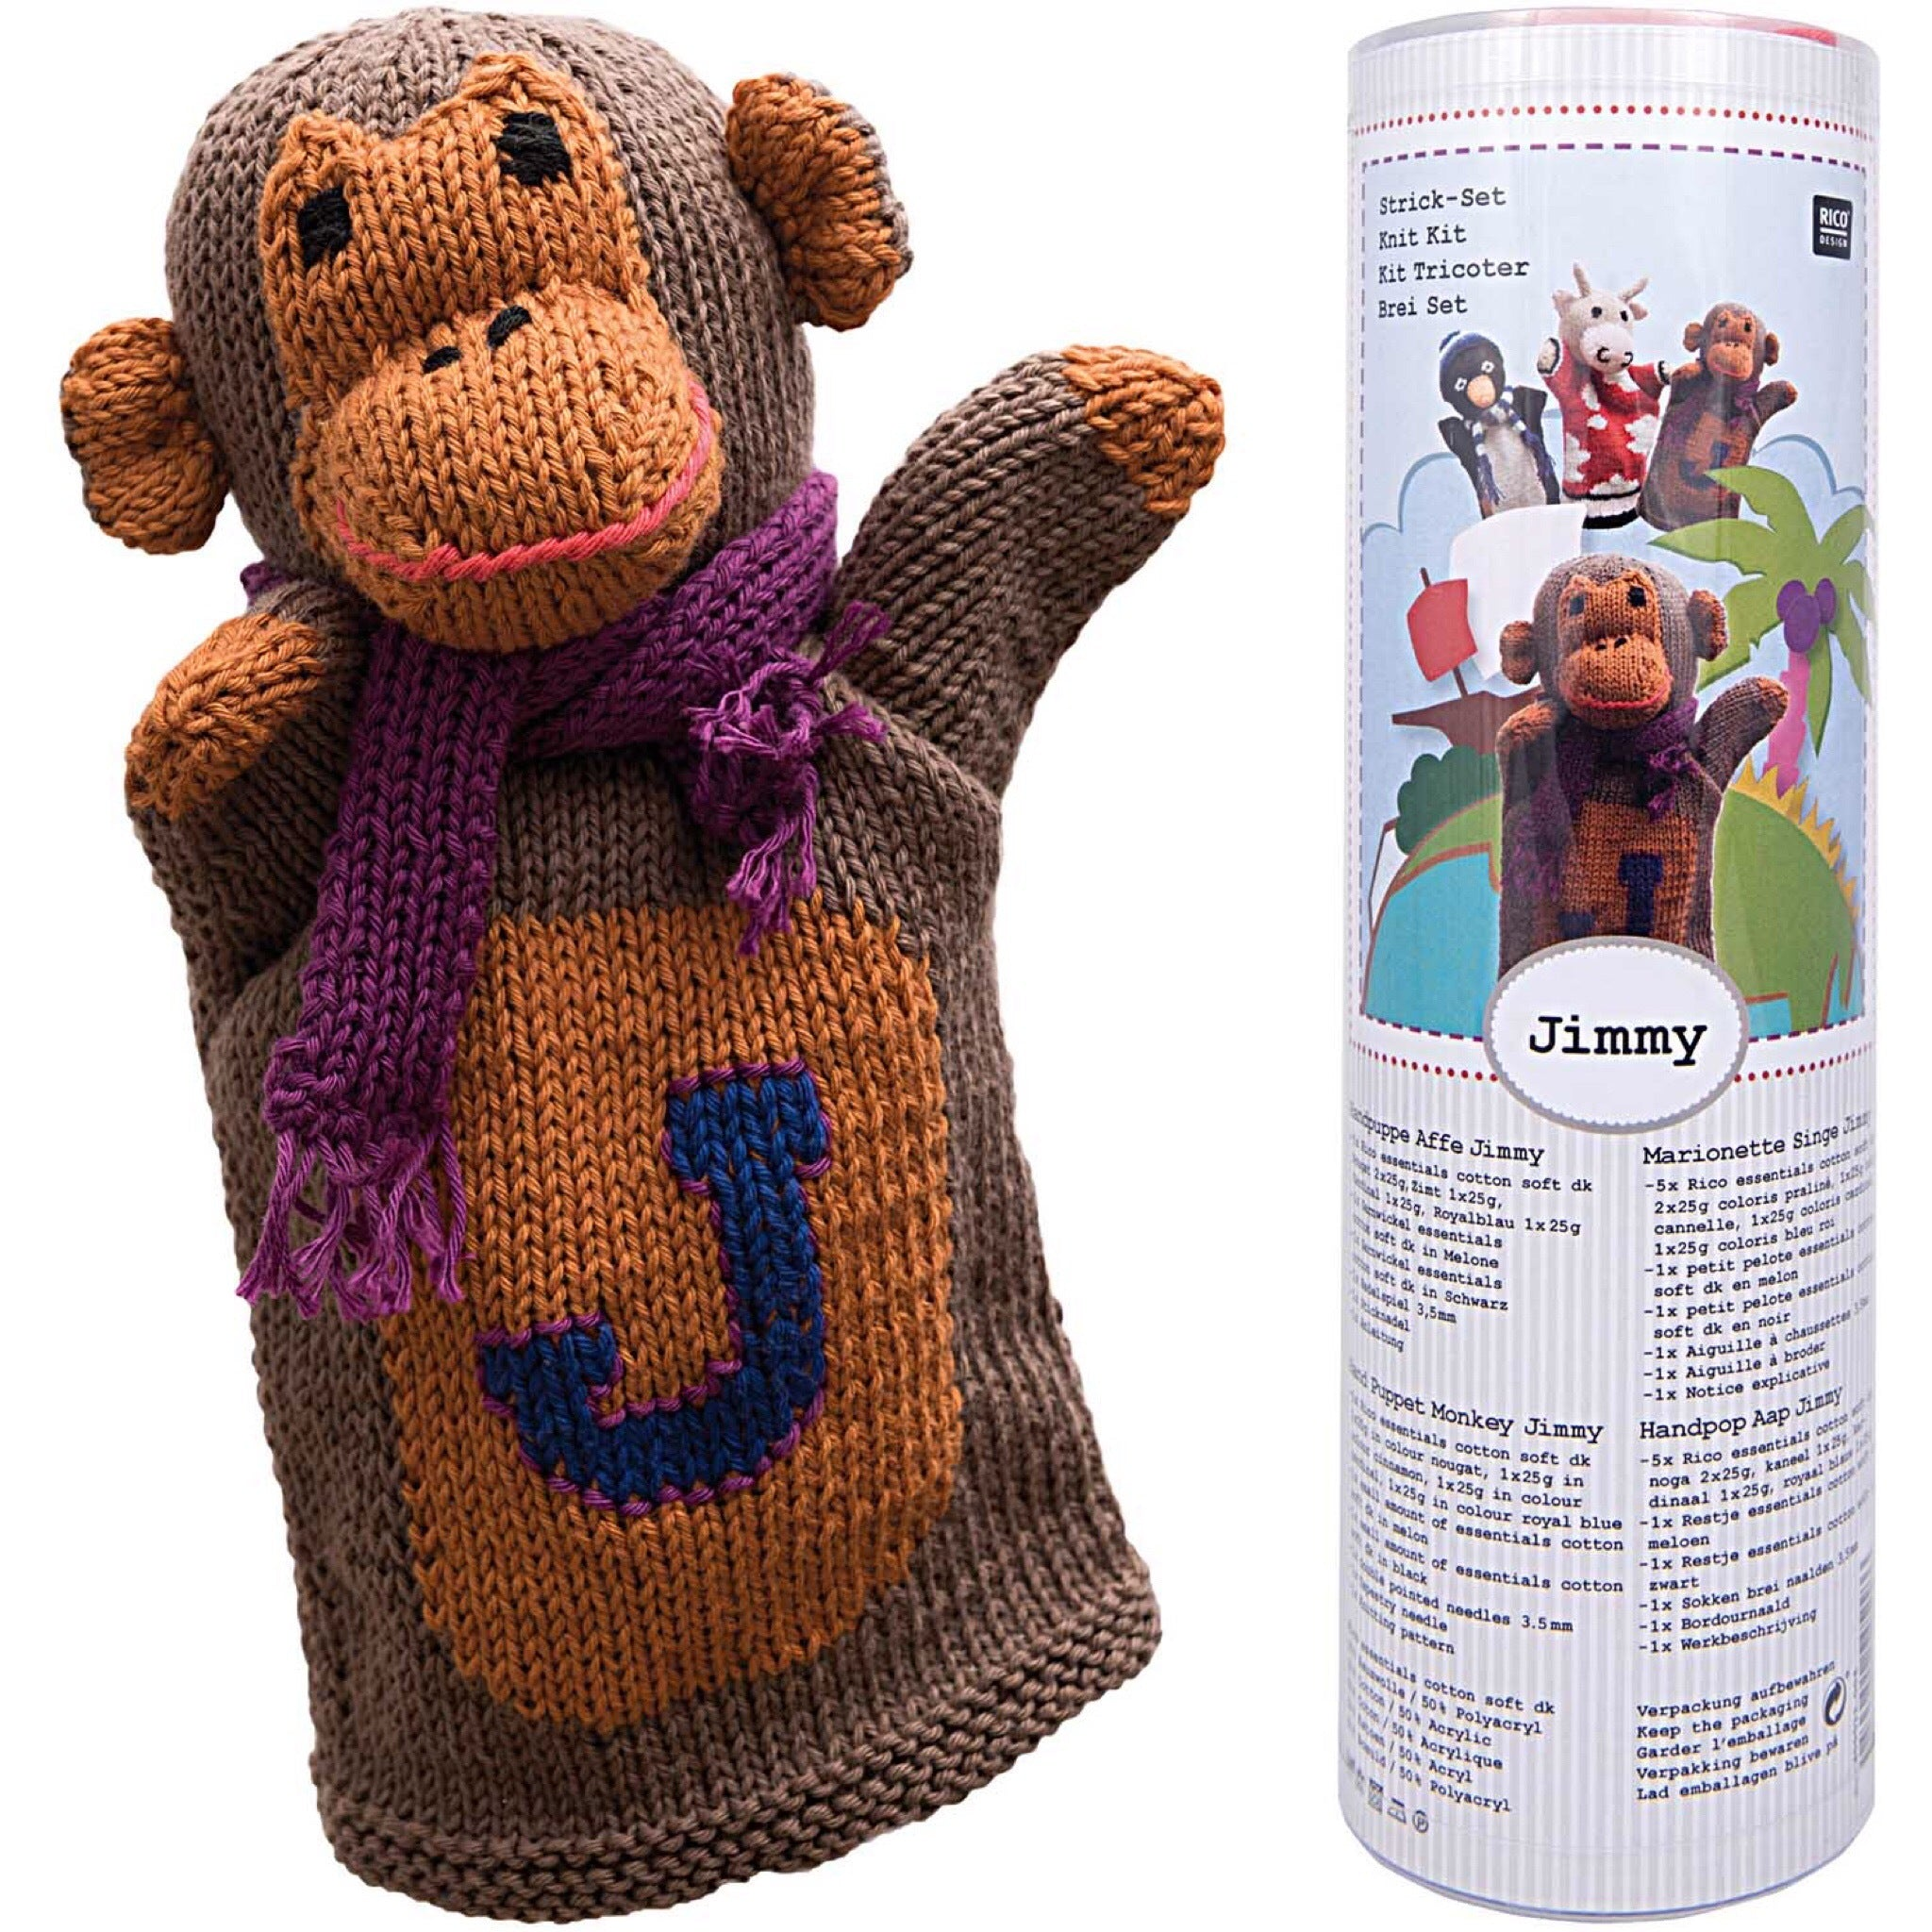 Jimmy Knitted hand puppet kit by Rico Design